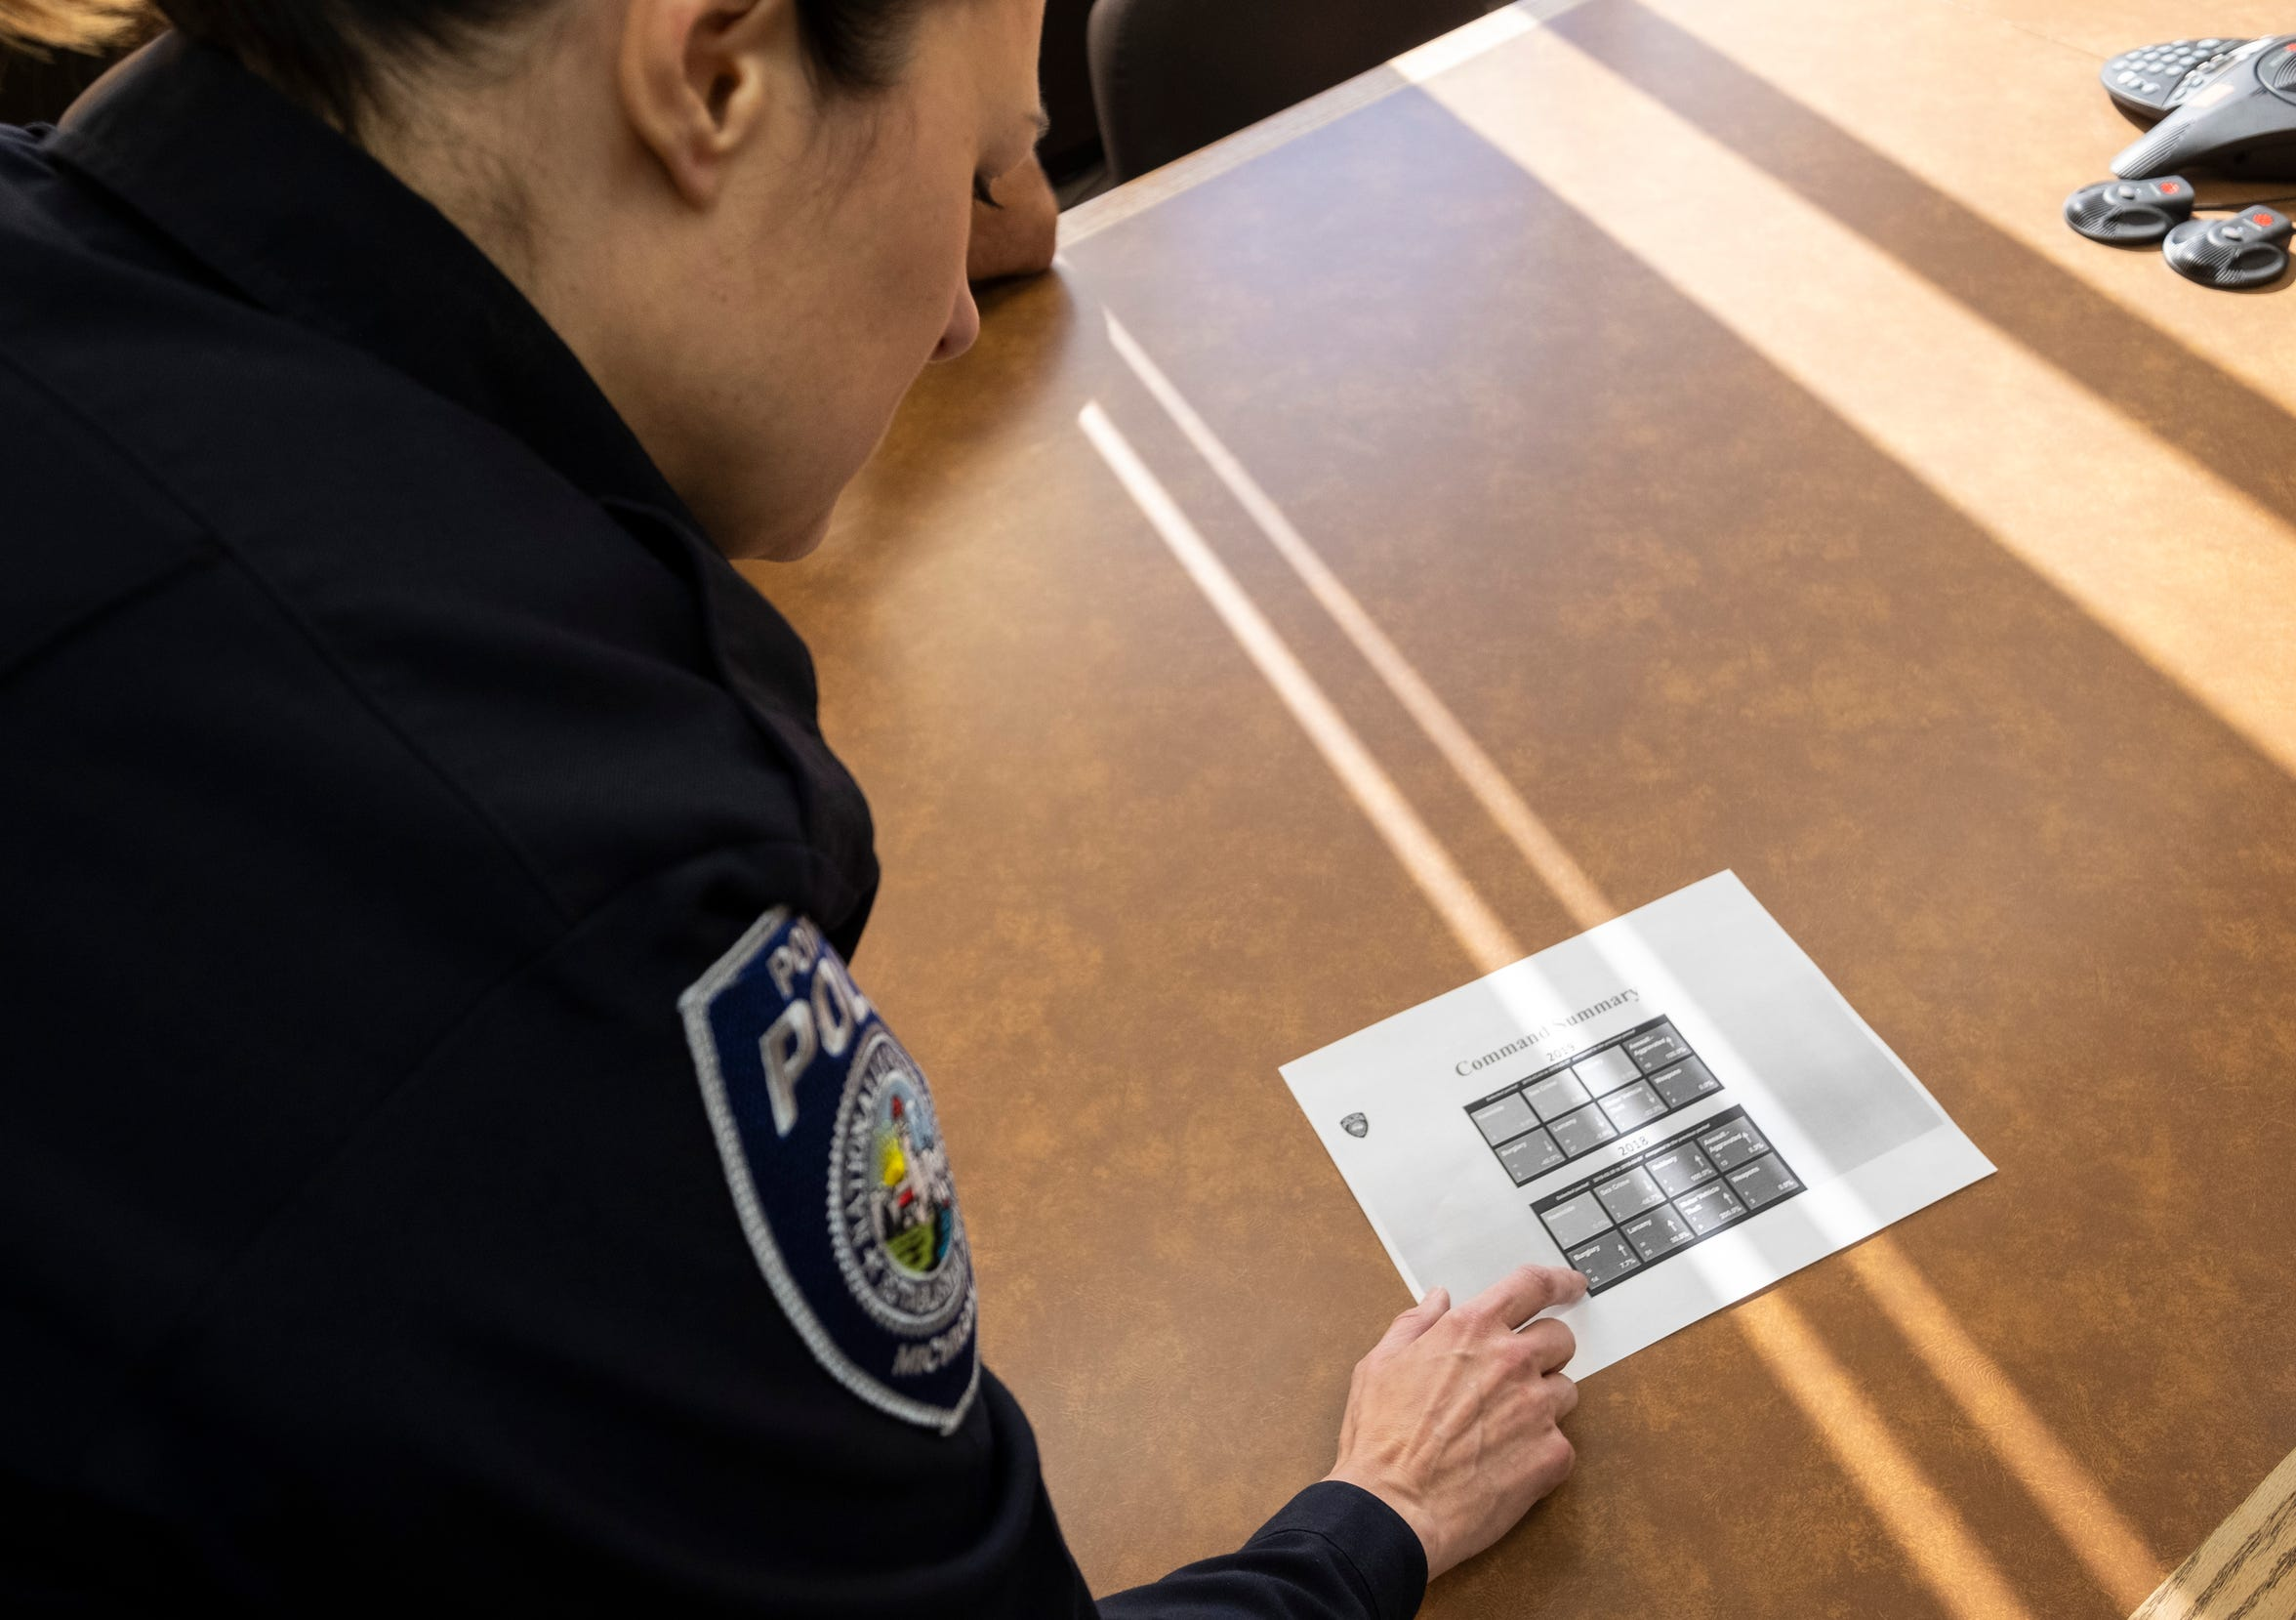 Port Huron Police Capt. Marcy Kuehn shows a report that displays changes in local crime trends used by the department Wednesday, May 8, 2019 in one of the department's conference rooms.